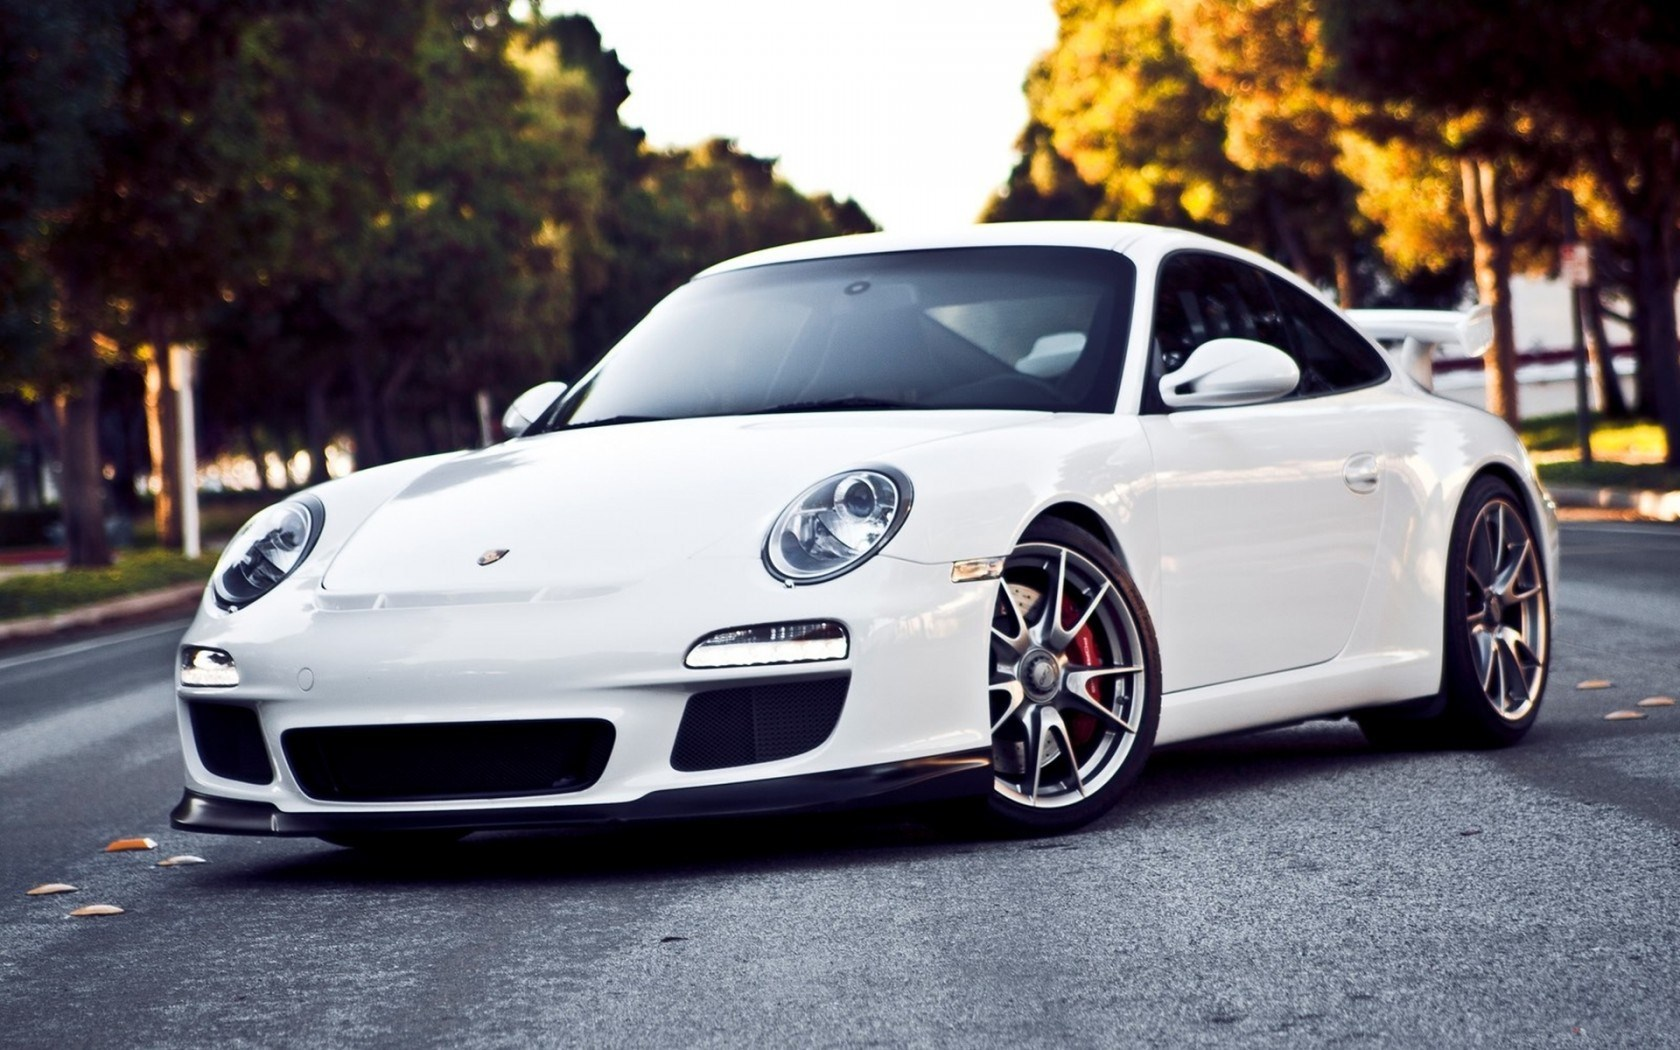 white-porsche-pictures-38906-39800-hd-wallpapers.jpg